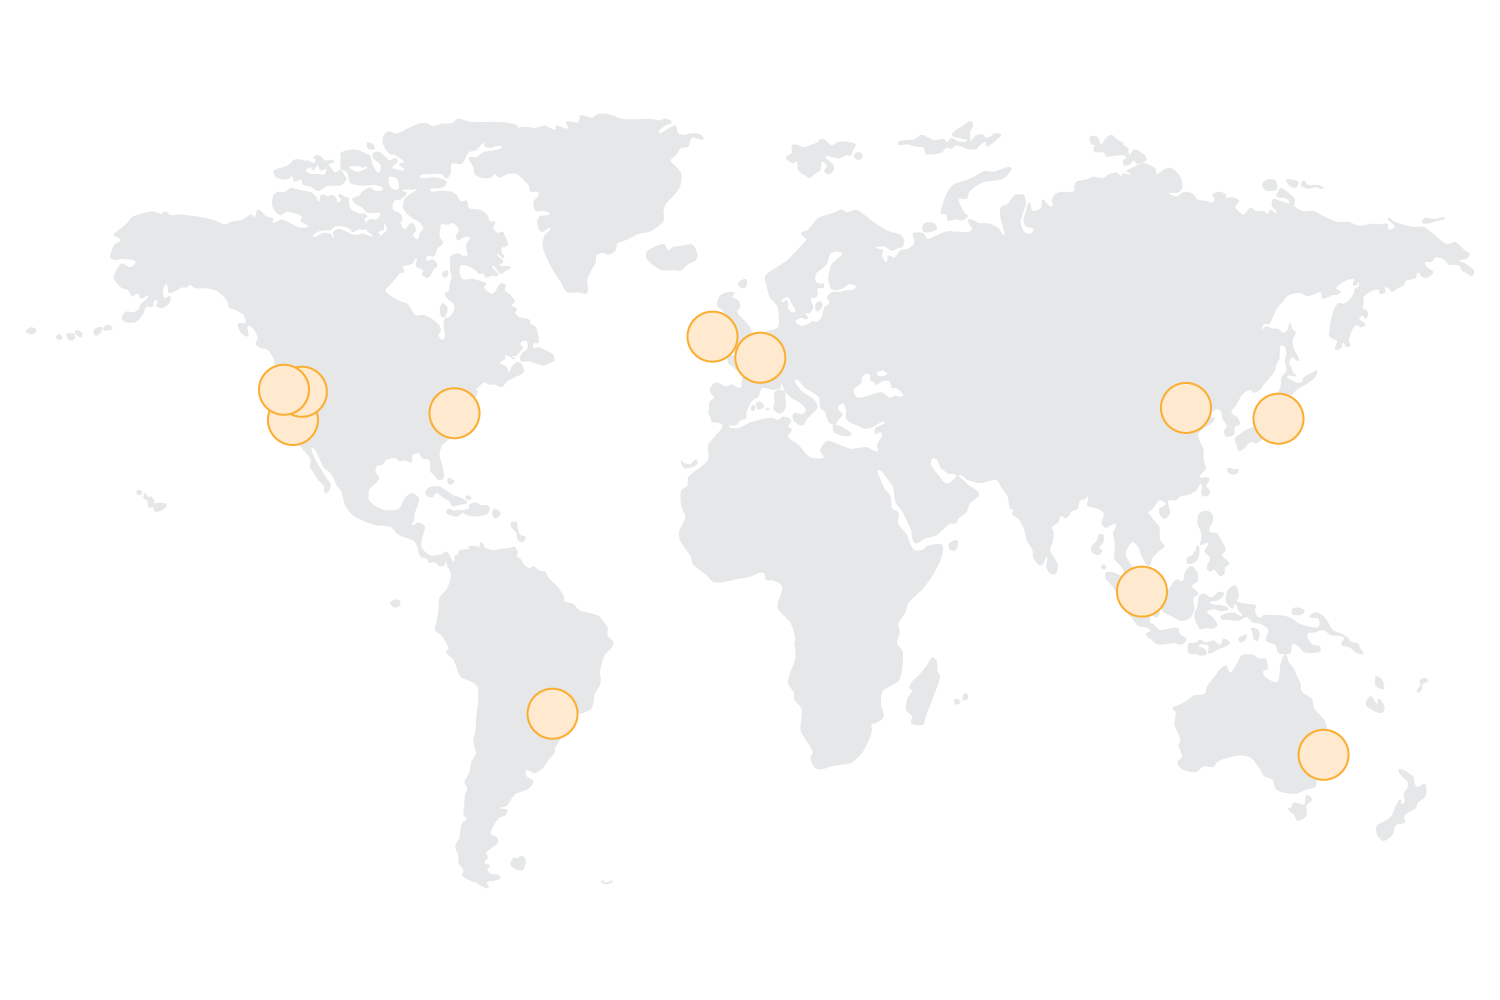 Aws websites jetsweep bi big data analytics have datacenters around the world in minutes gumiabroncs Gallery